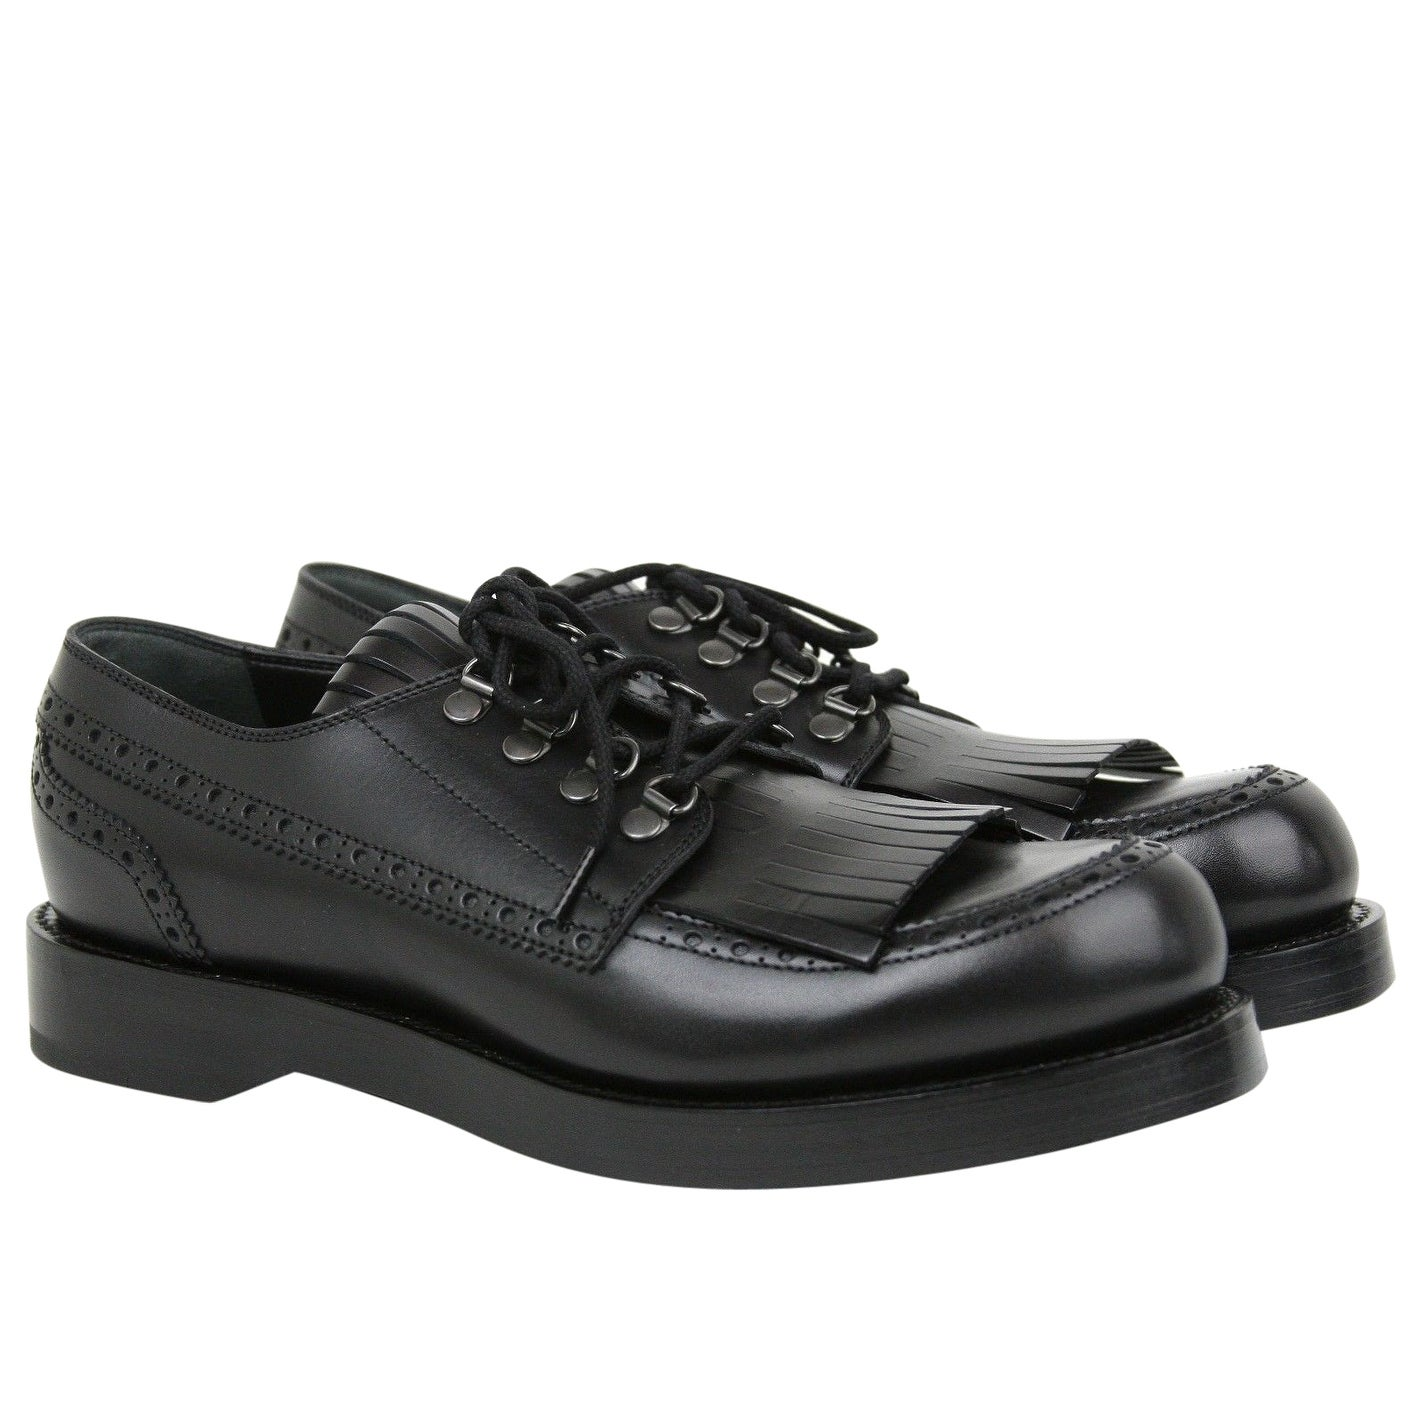 221028ce9 Shop Gucci Lace-up Black Leather Fringed Brogue Shoes 358271 1000 ...